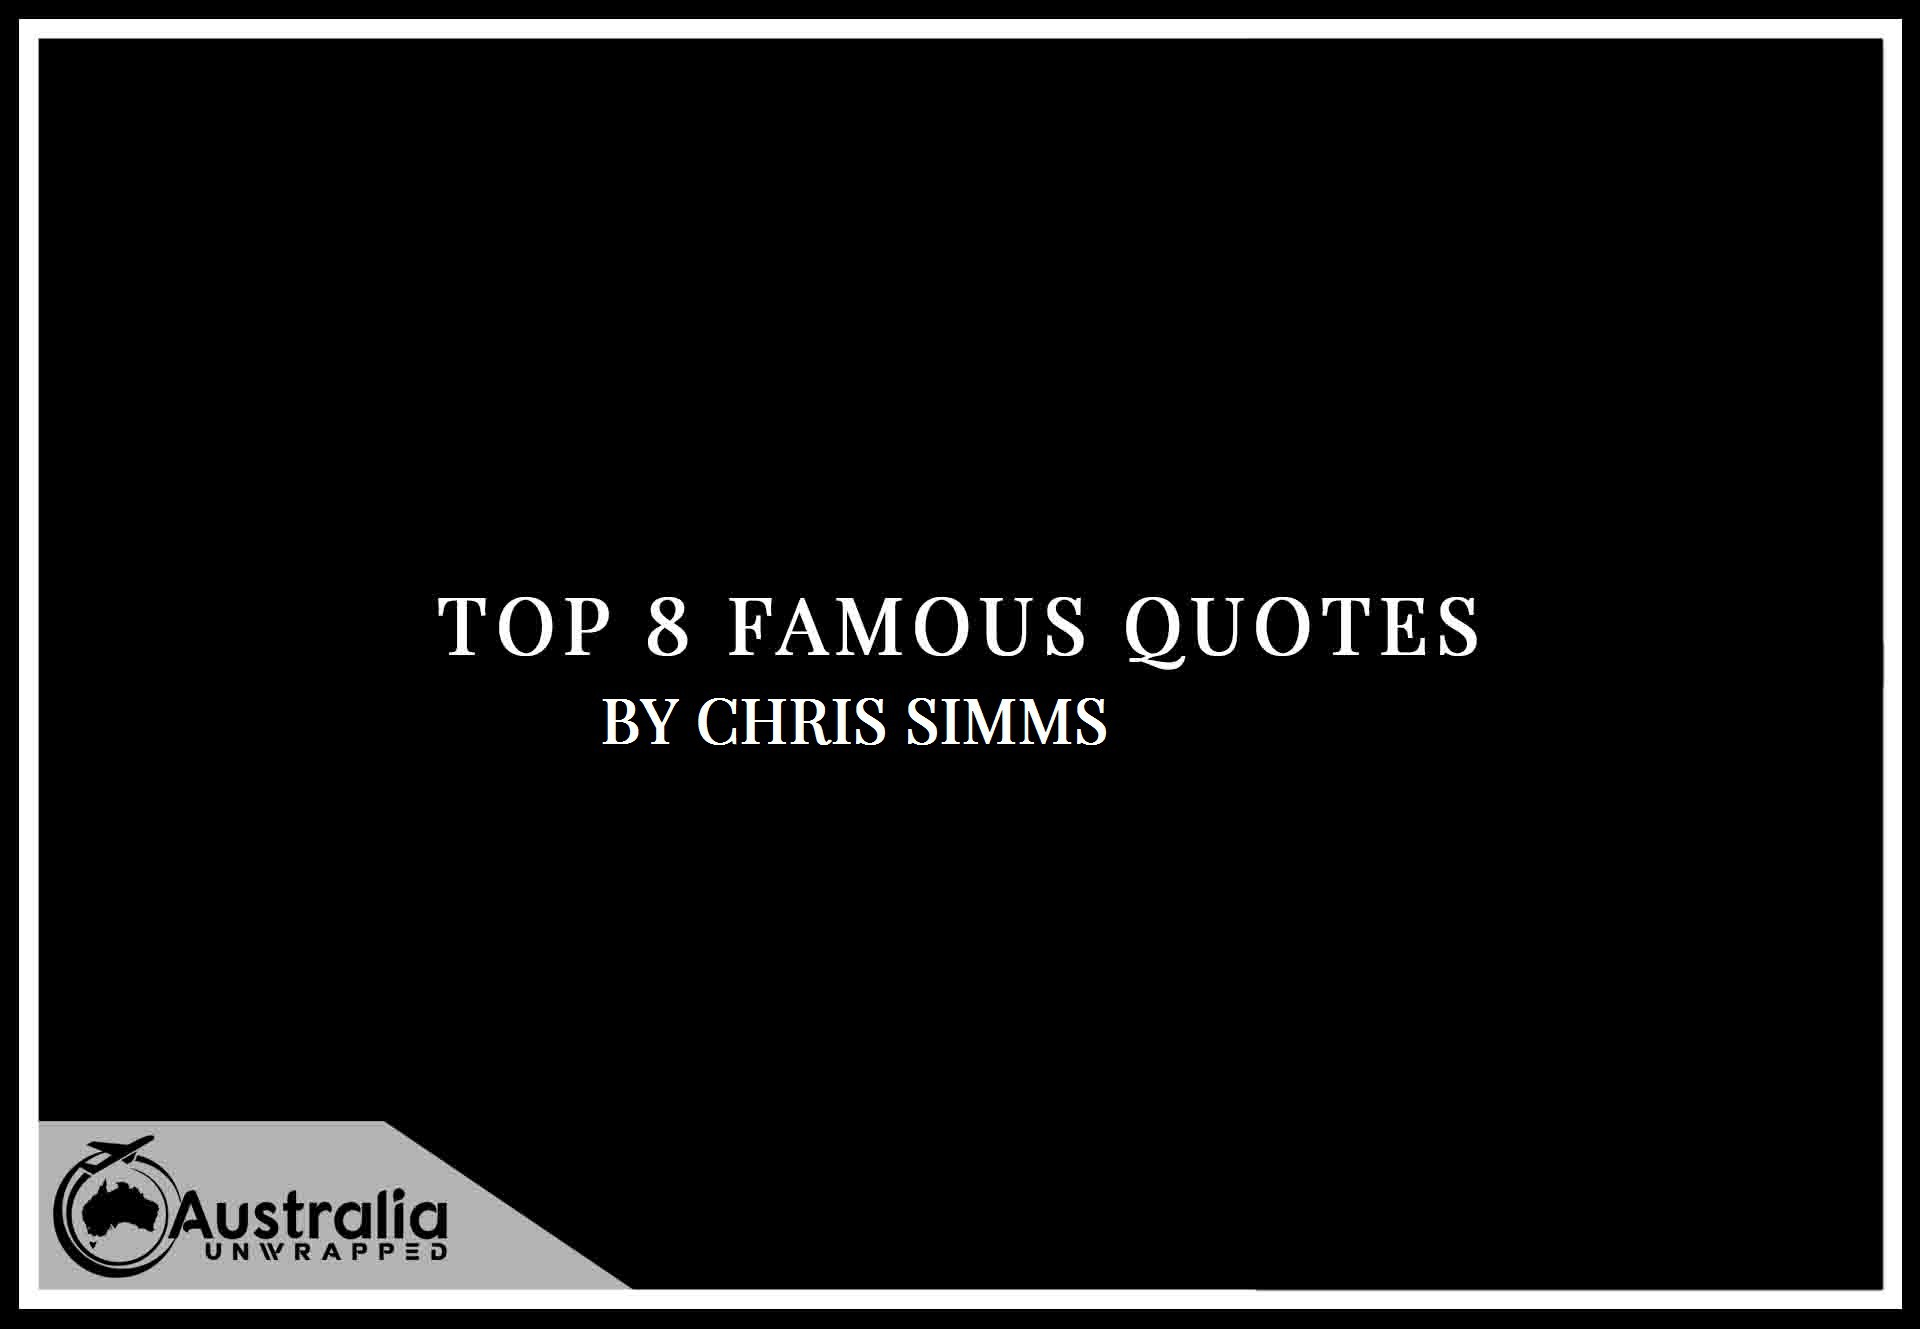 Chris Simms's Top 8 Popular and Famous Quotes